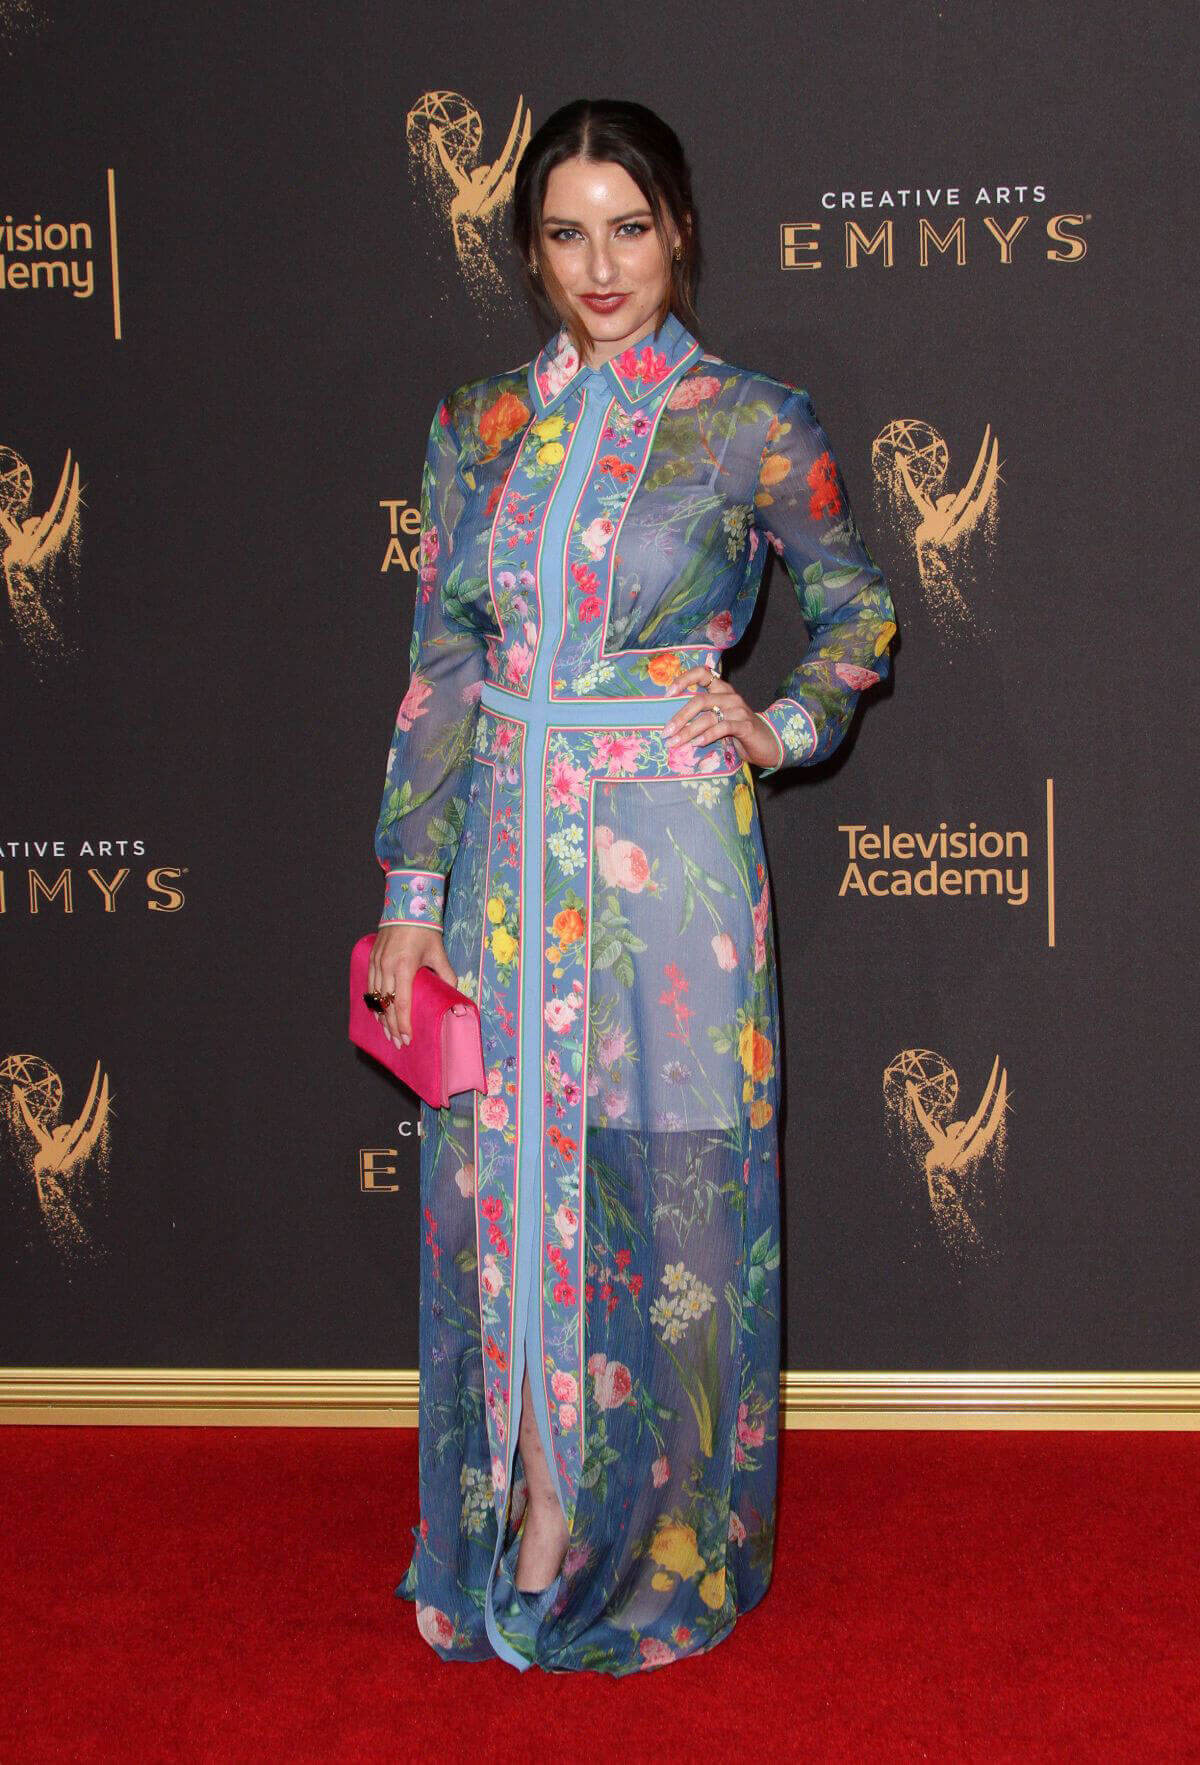 Chloe Arbiture at Creative Arts Emmy Awards in Los Angeles